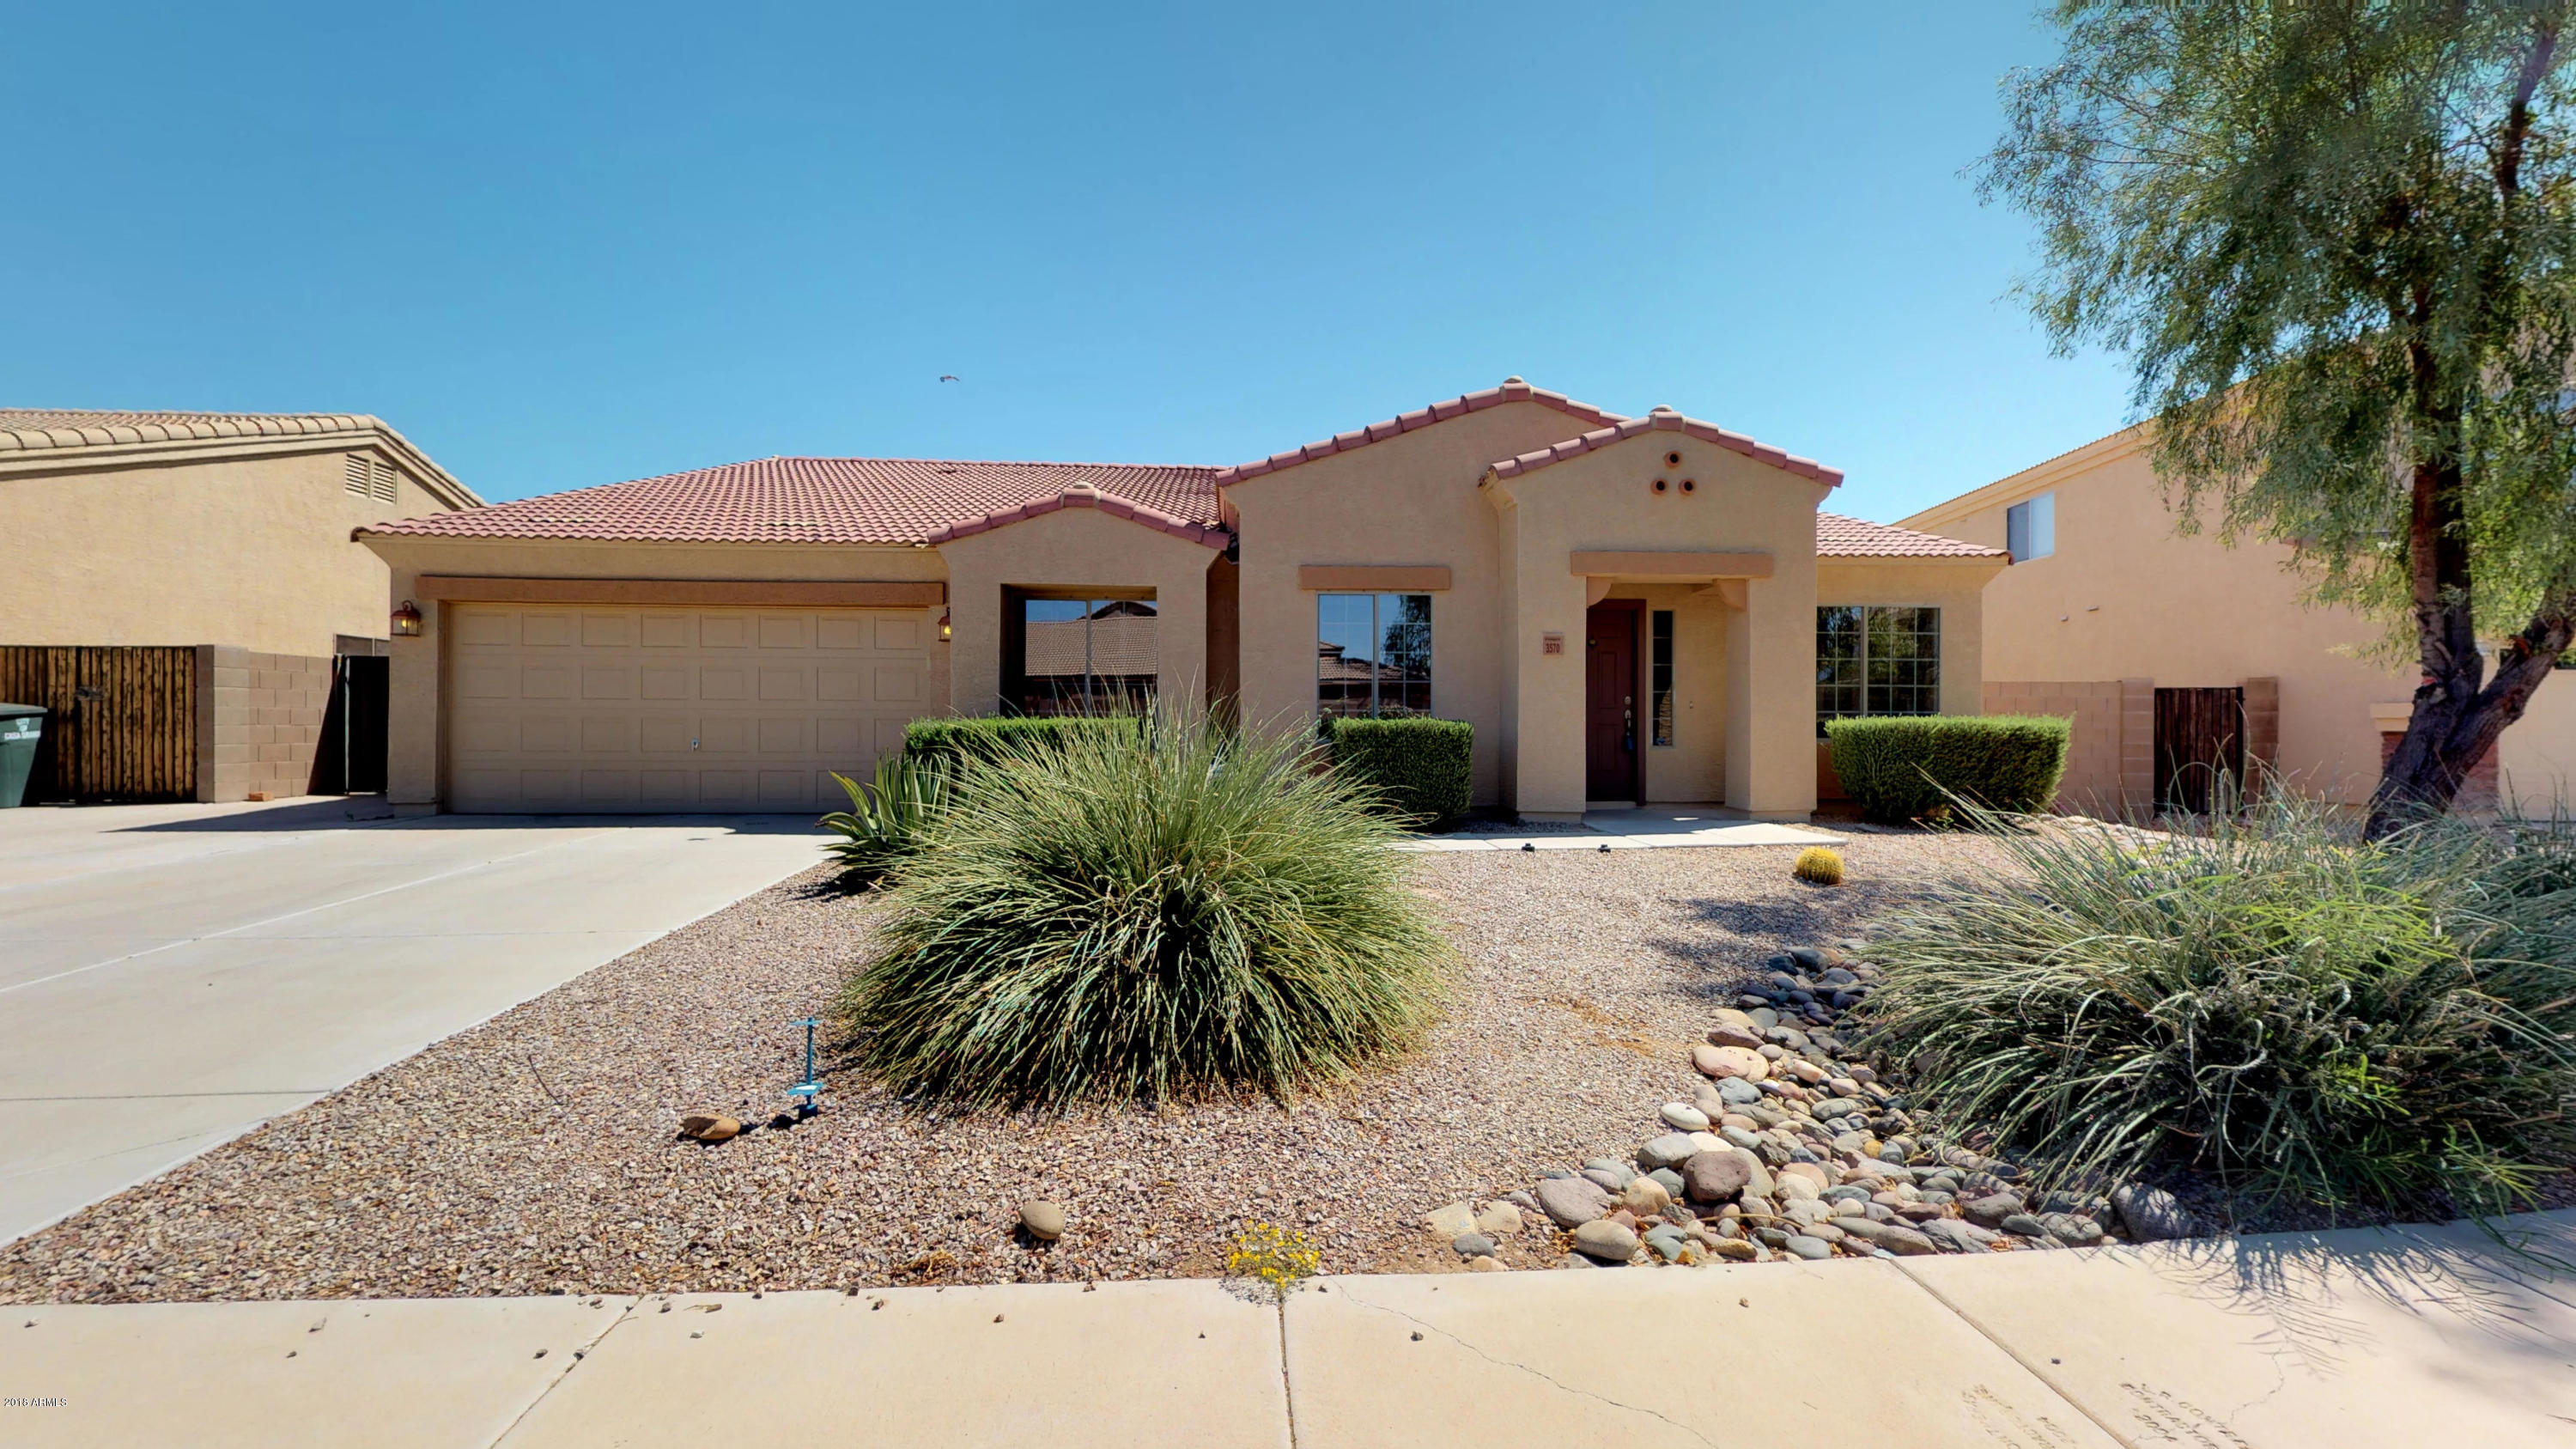 Photo for 3570 N Lady Lake Lane, Casa Grande, AZ 85122 (MLS # 5817197)